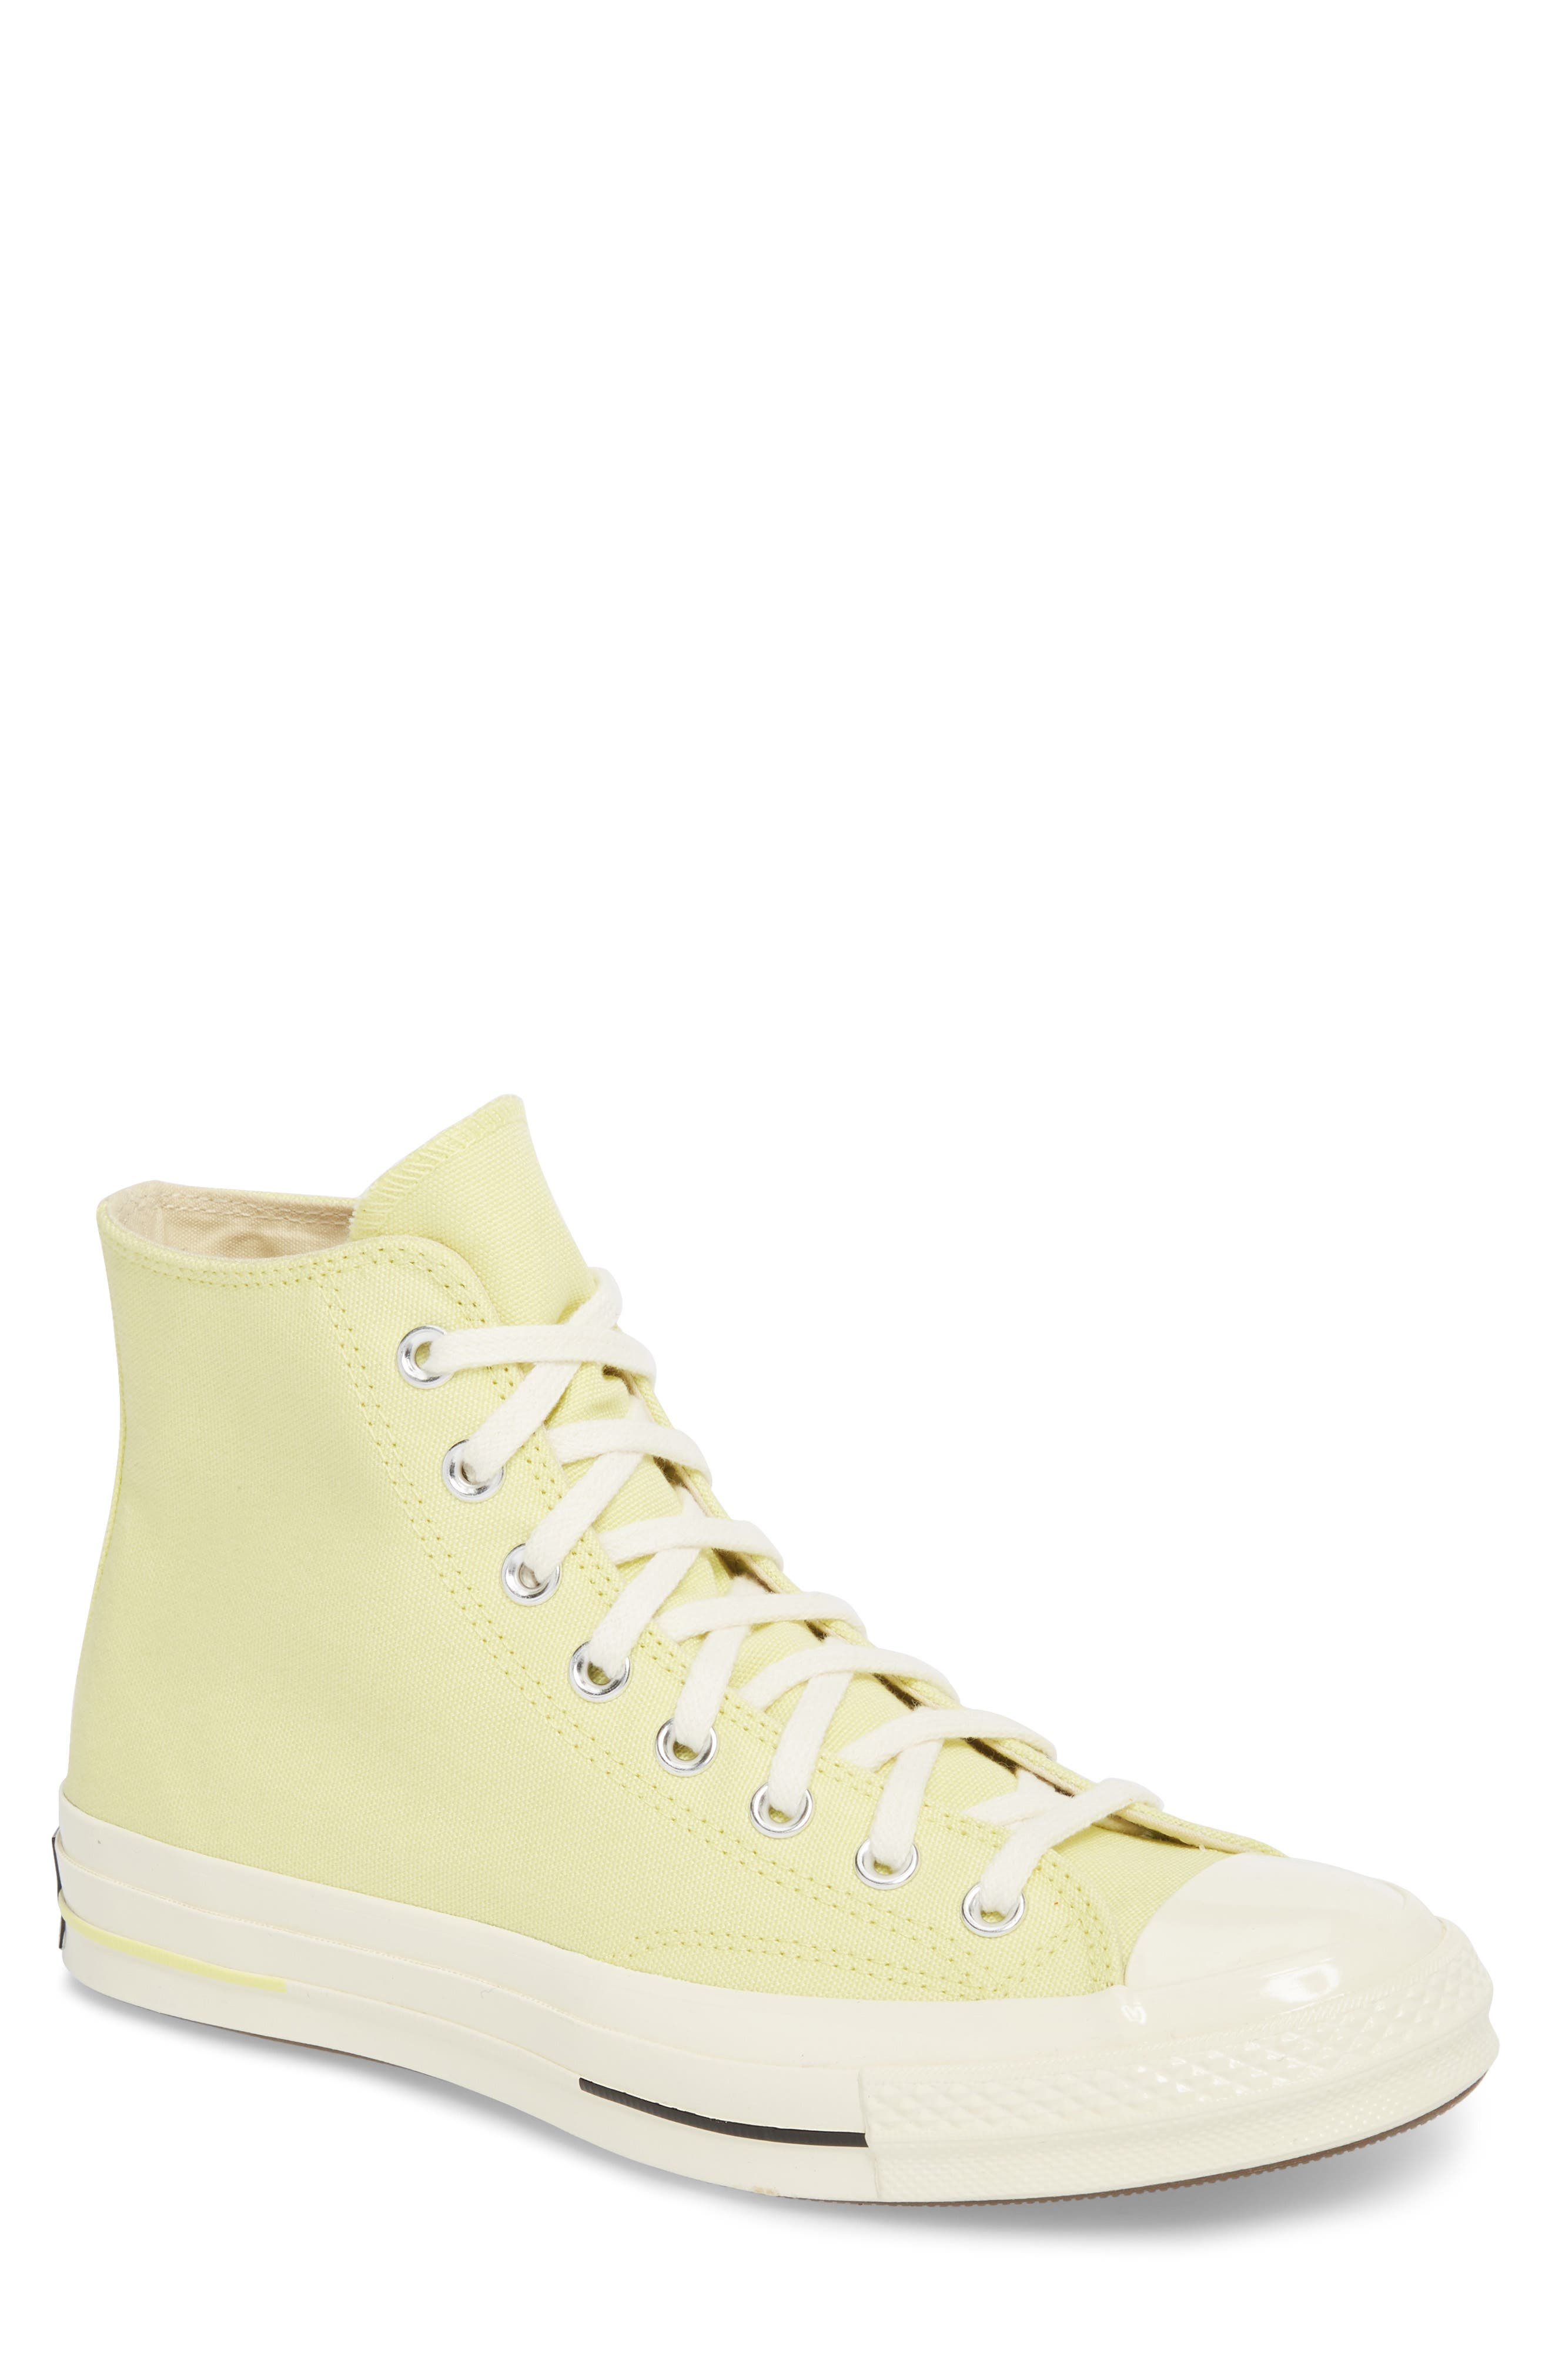 Converse Chuck Taylor® All Star® 70 Brights High Top Sneaker